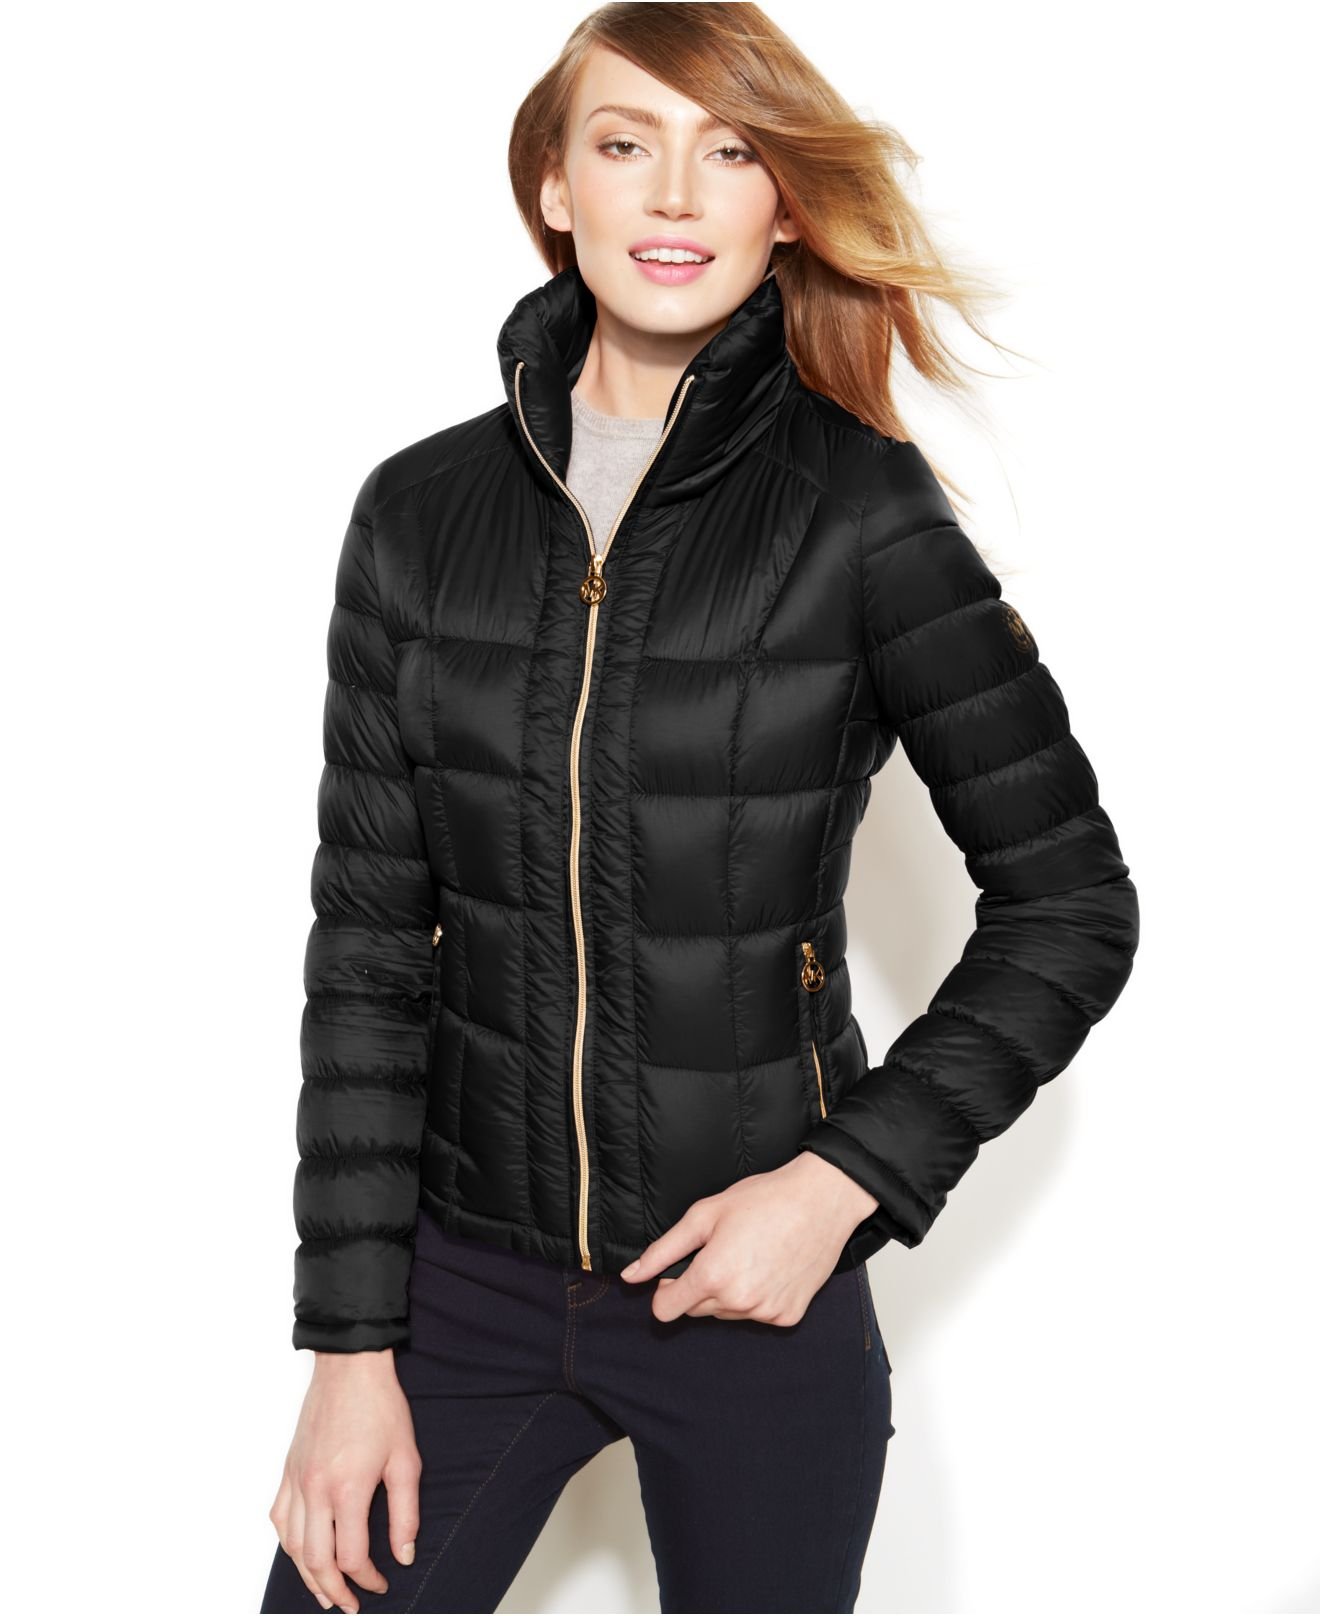 michael kors michael packable quilted down puffer coat in black lyst. Black Bedroom Furniture Sets. Home Design Ideas